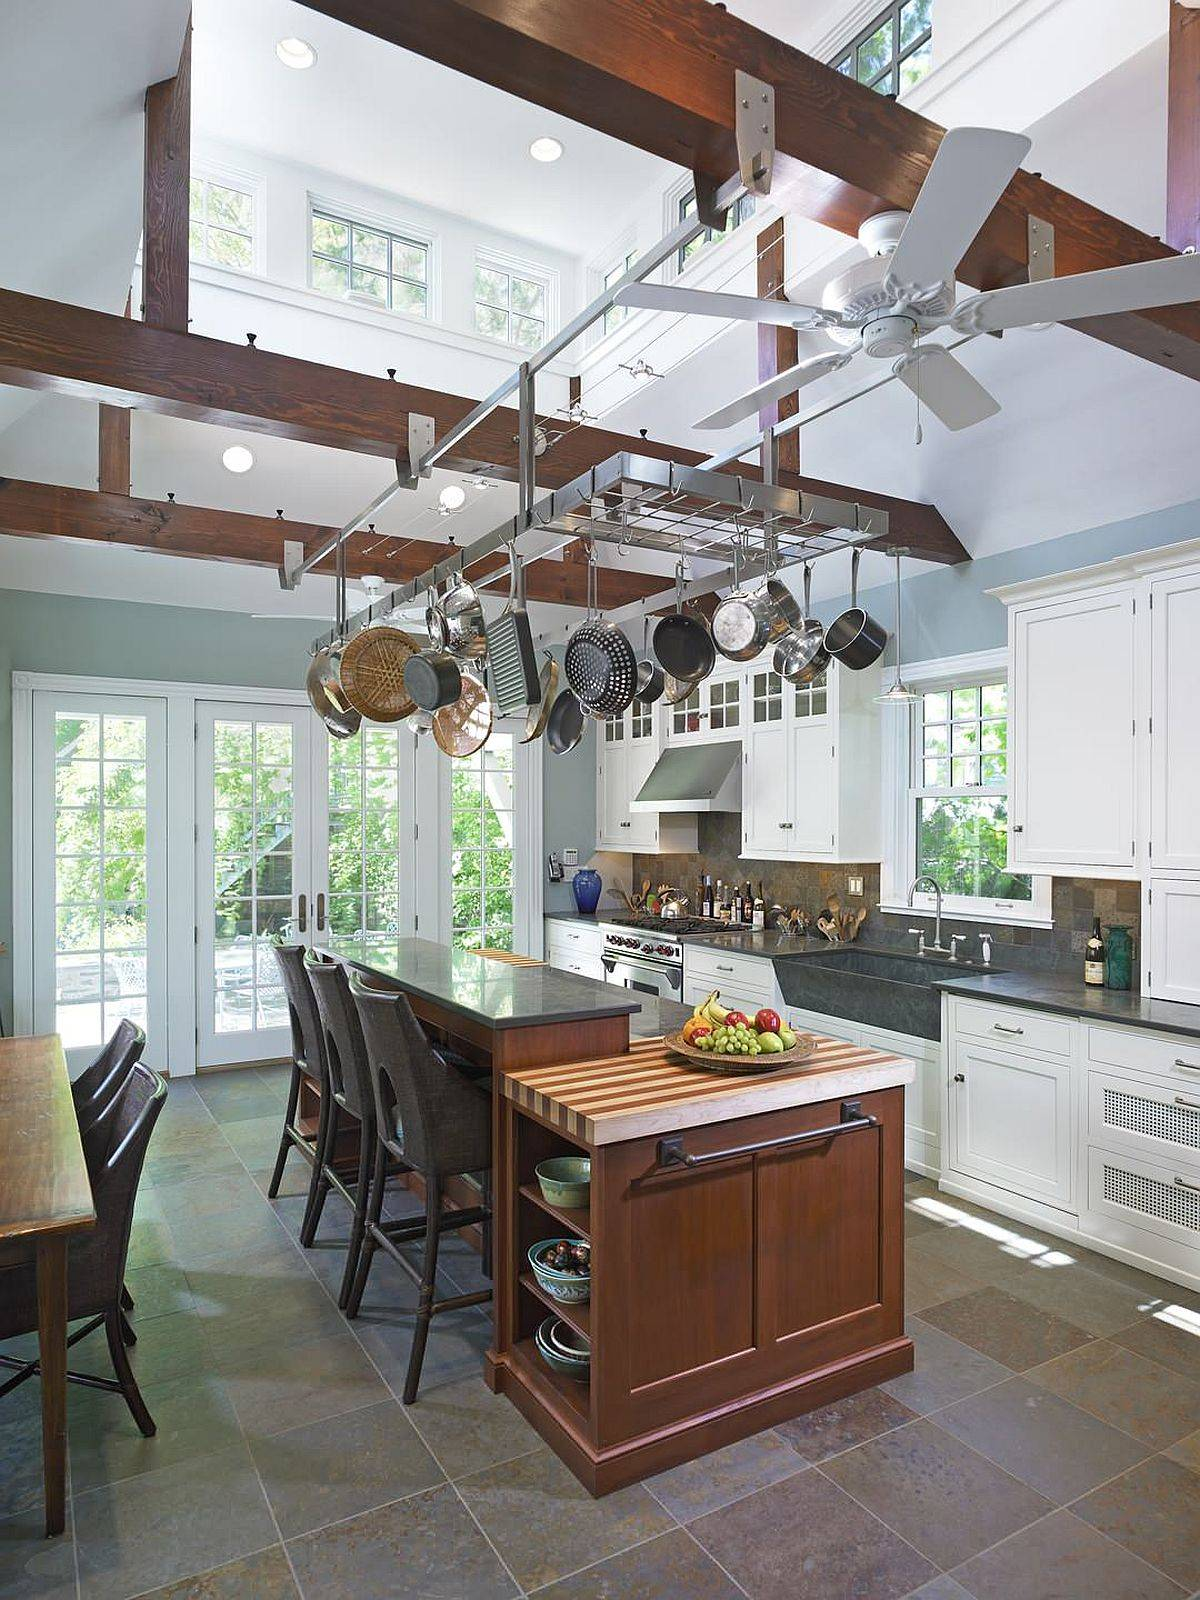 Suspended-pot-rack-saves-space-in-the-kitchen-in-more-ways-than-one-32936